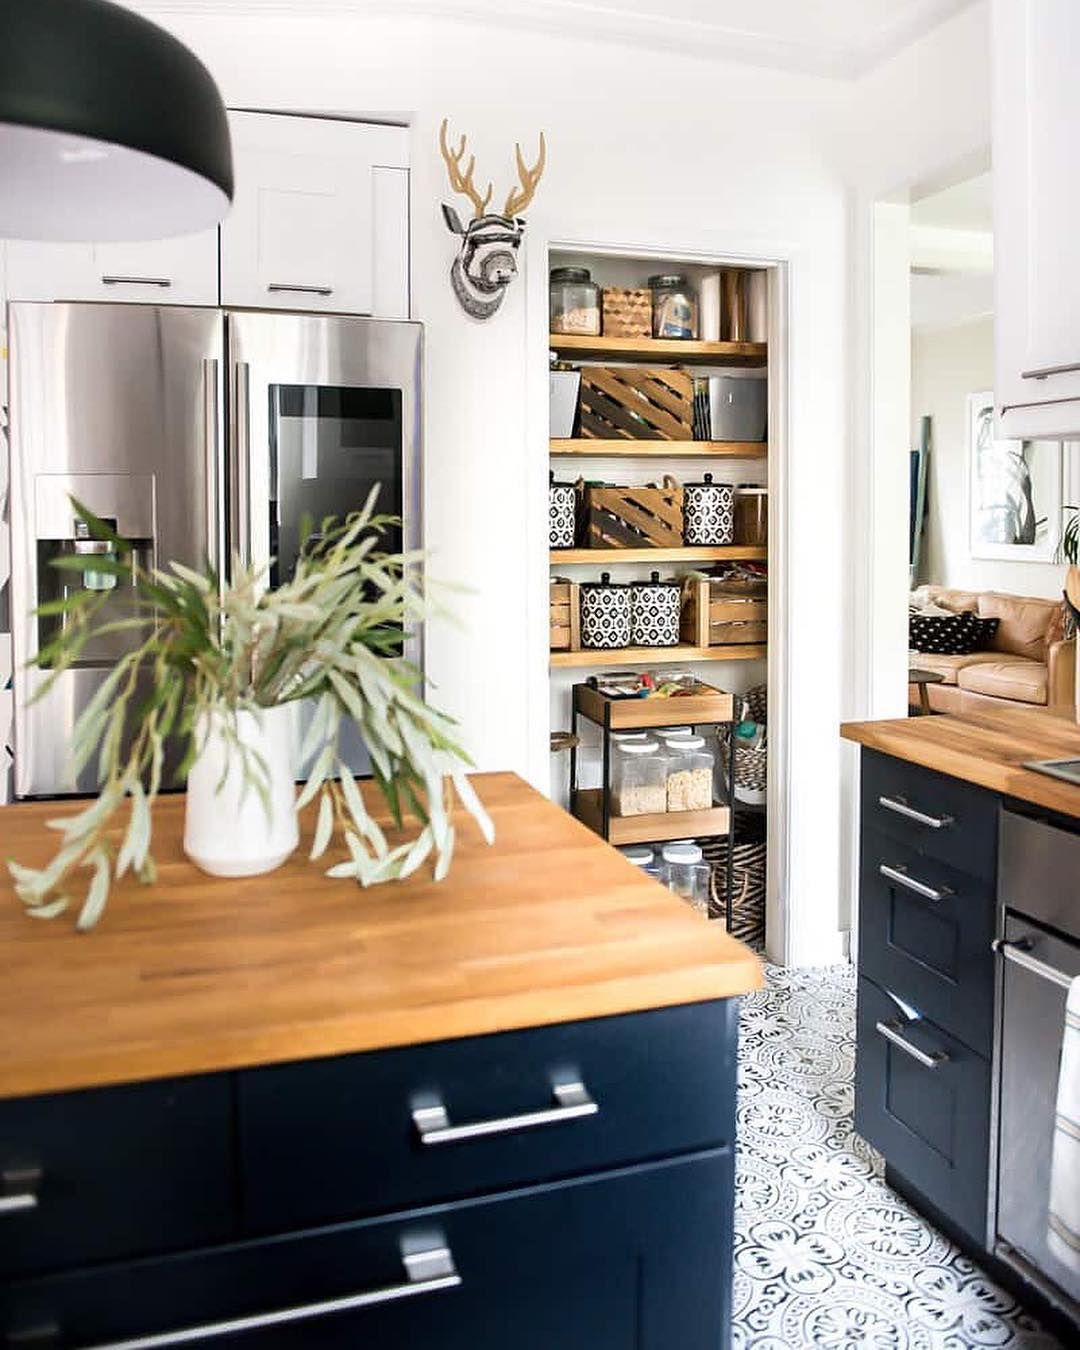 If You Remember I Opened Up My Pantry A Few Months Ago And Now It S A Doorless Super Organized Space I M Hap With Images Open Pantry Kitchen Design Trends Kitchen Plans